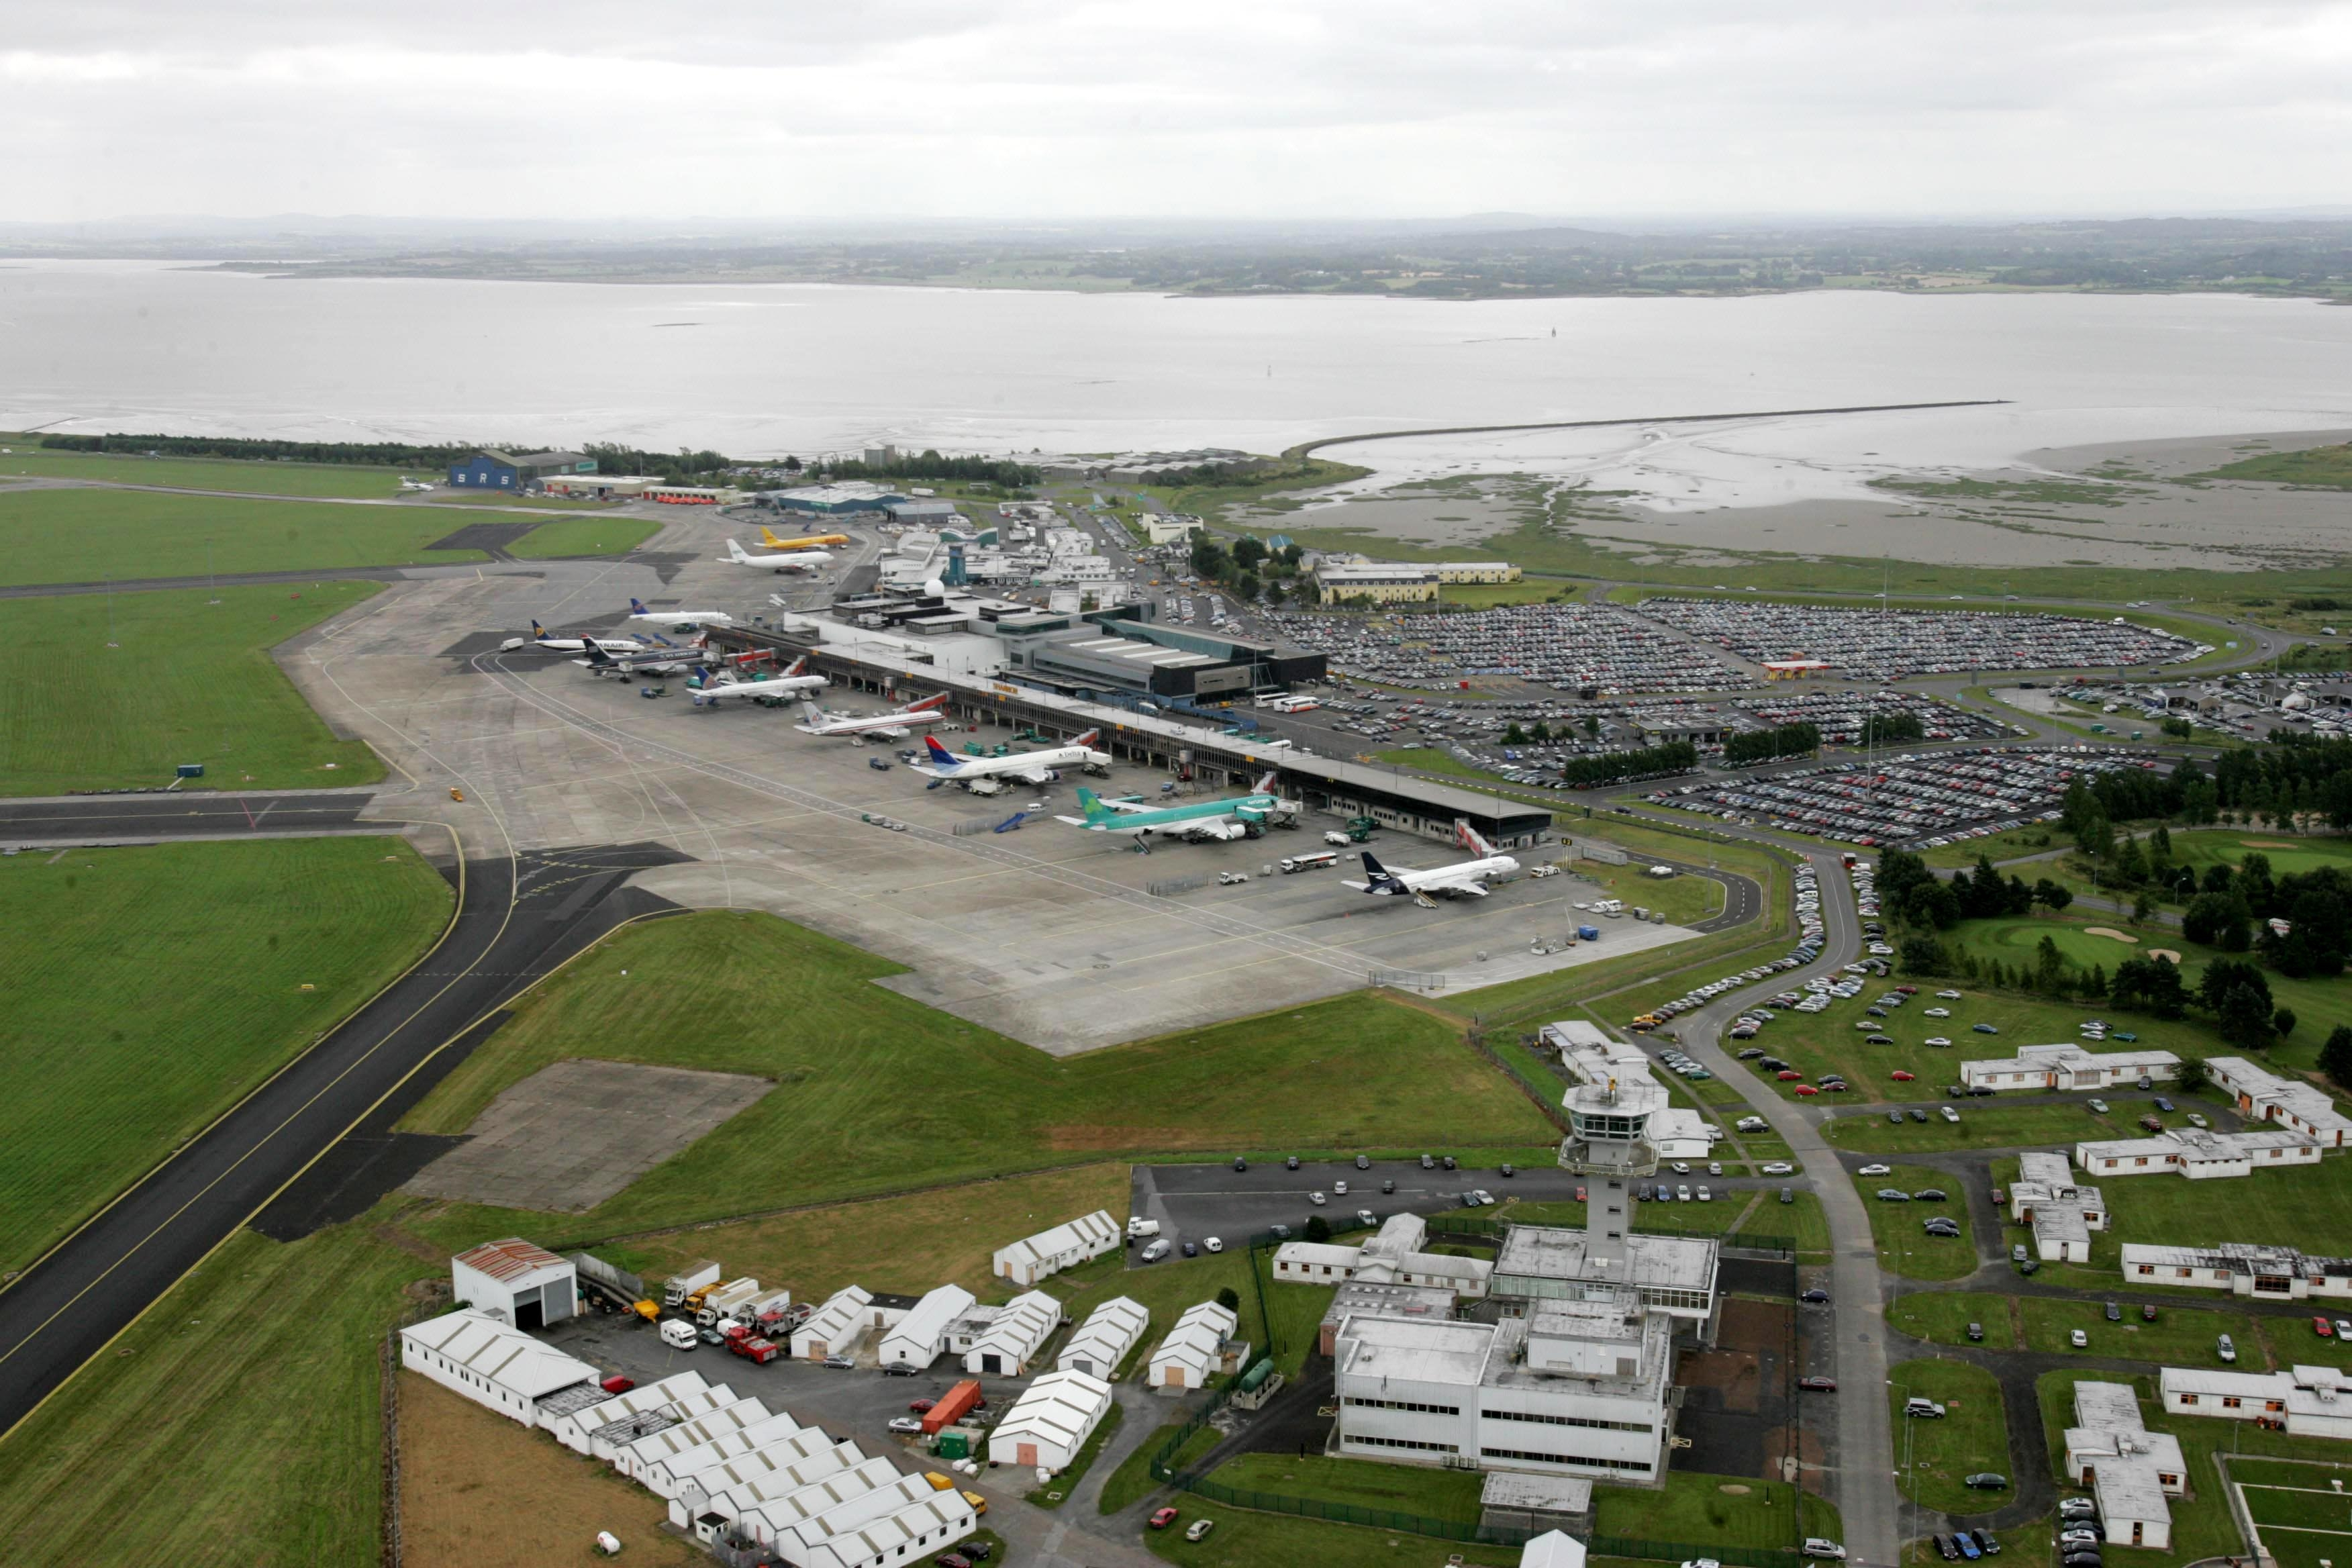 Meet & Greet Services at Shannon Airport - Shannon Airport